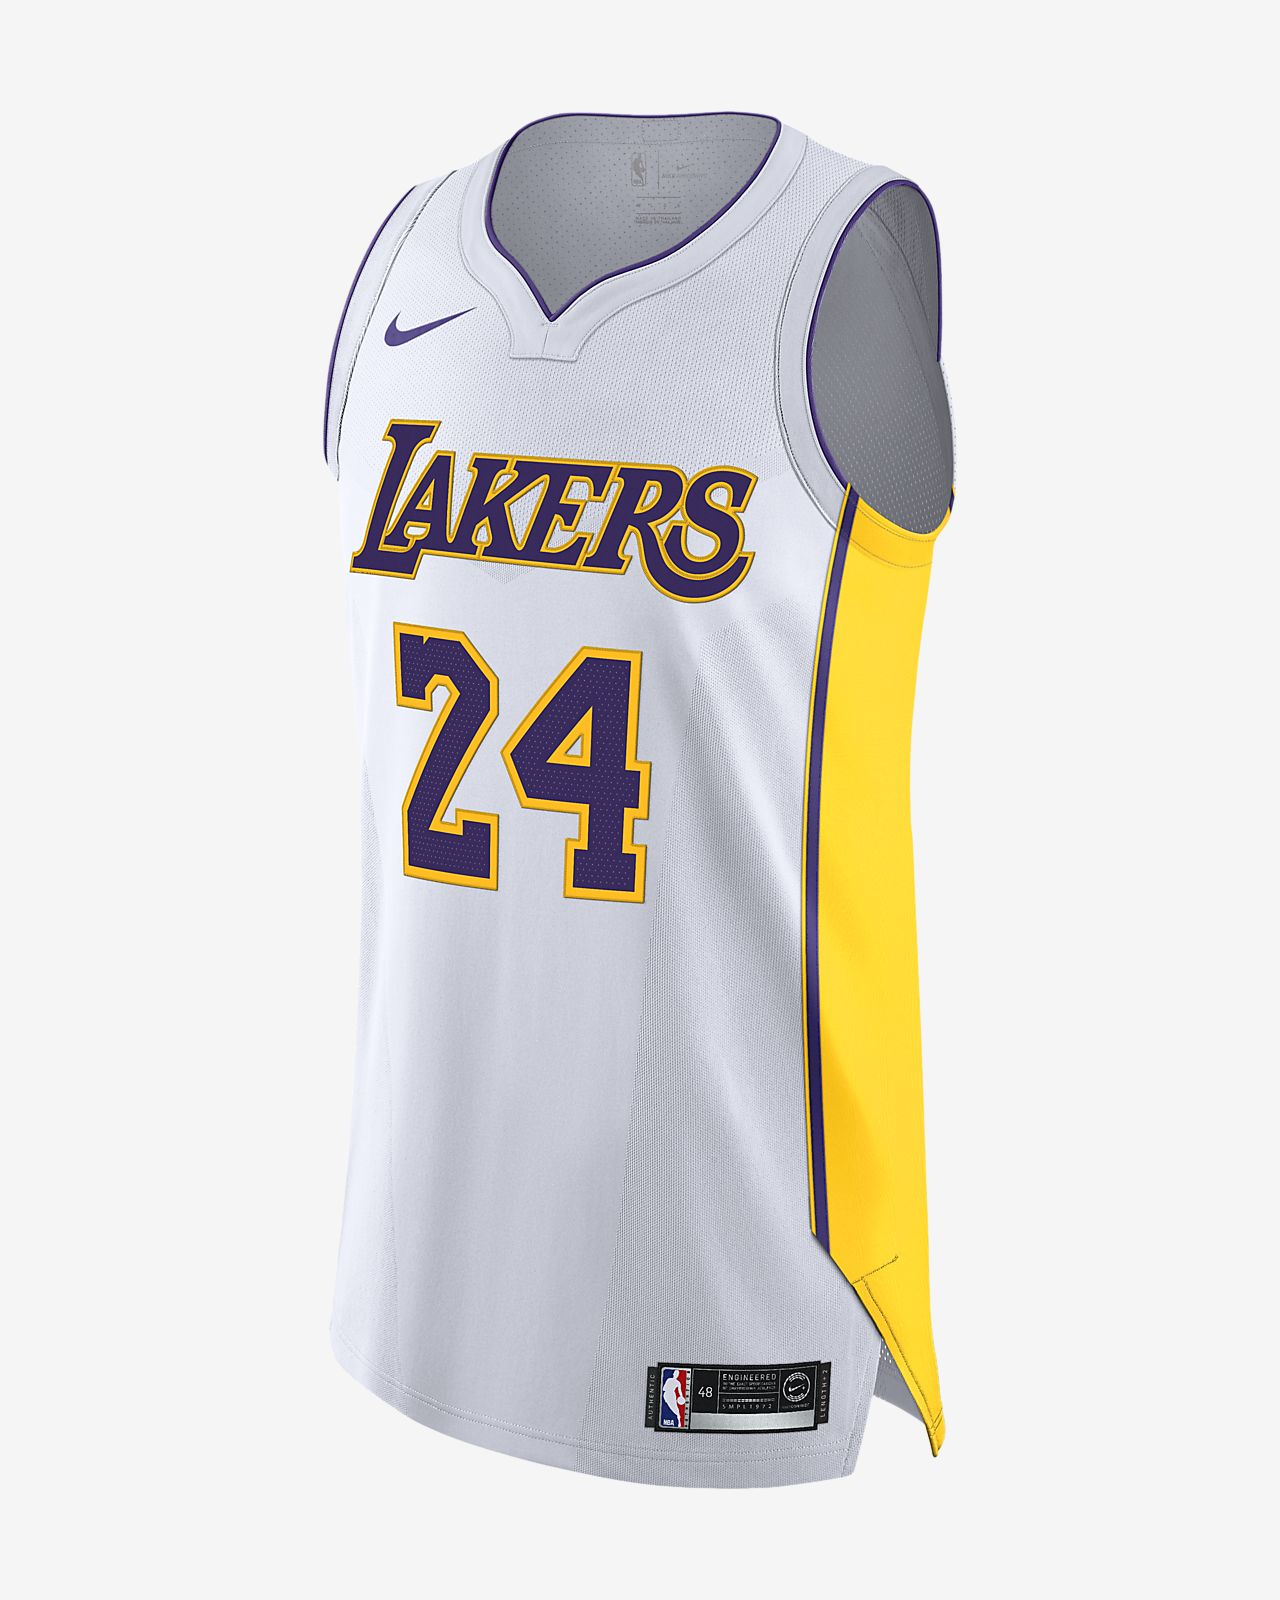 洛杉矶湖人队 (Kobe Bryant) Association Edition Authentic Nike NBA Connected Jersey 男子球衣